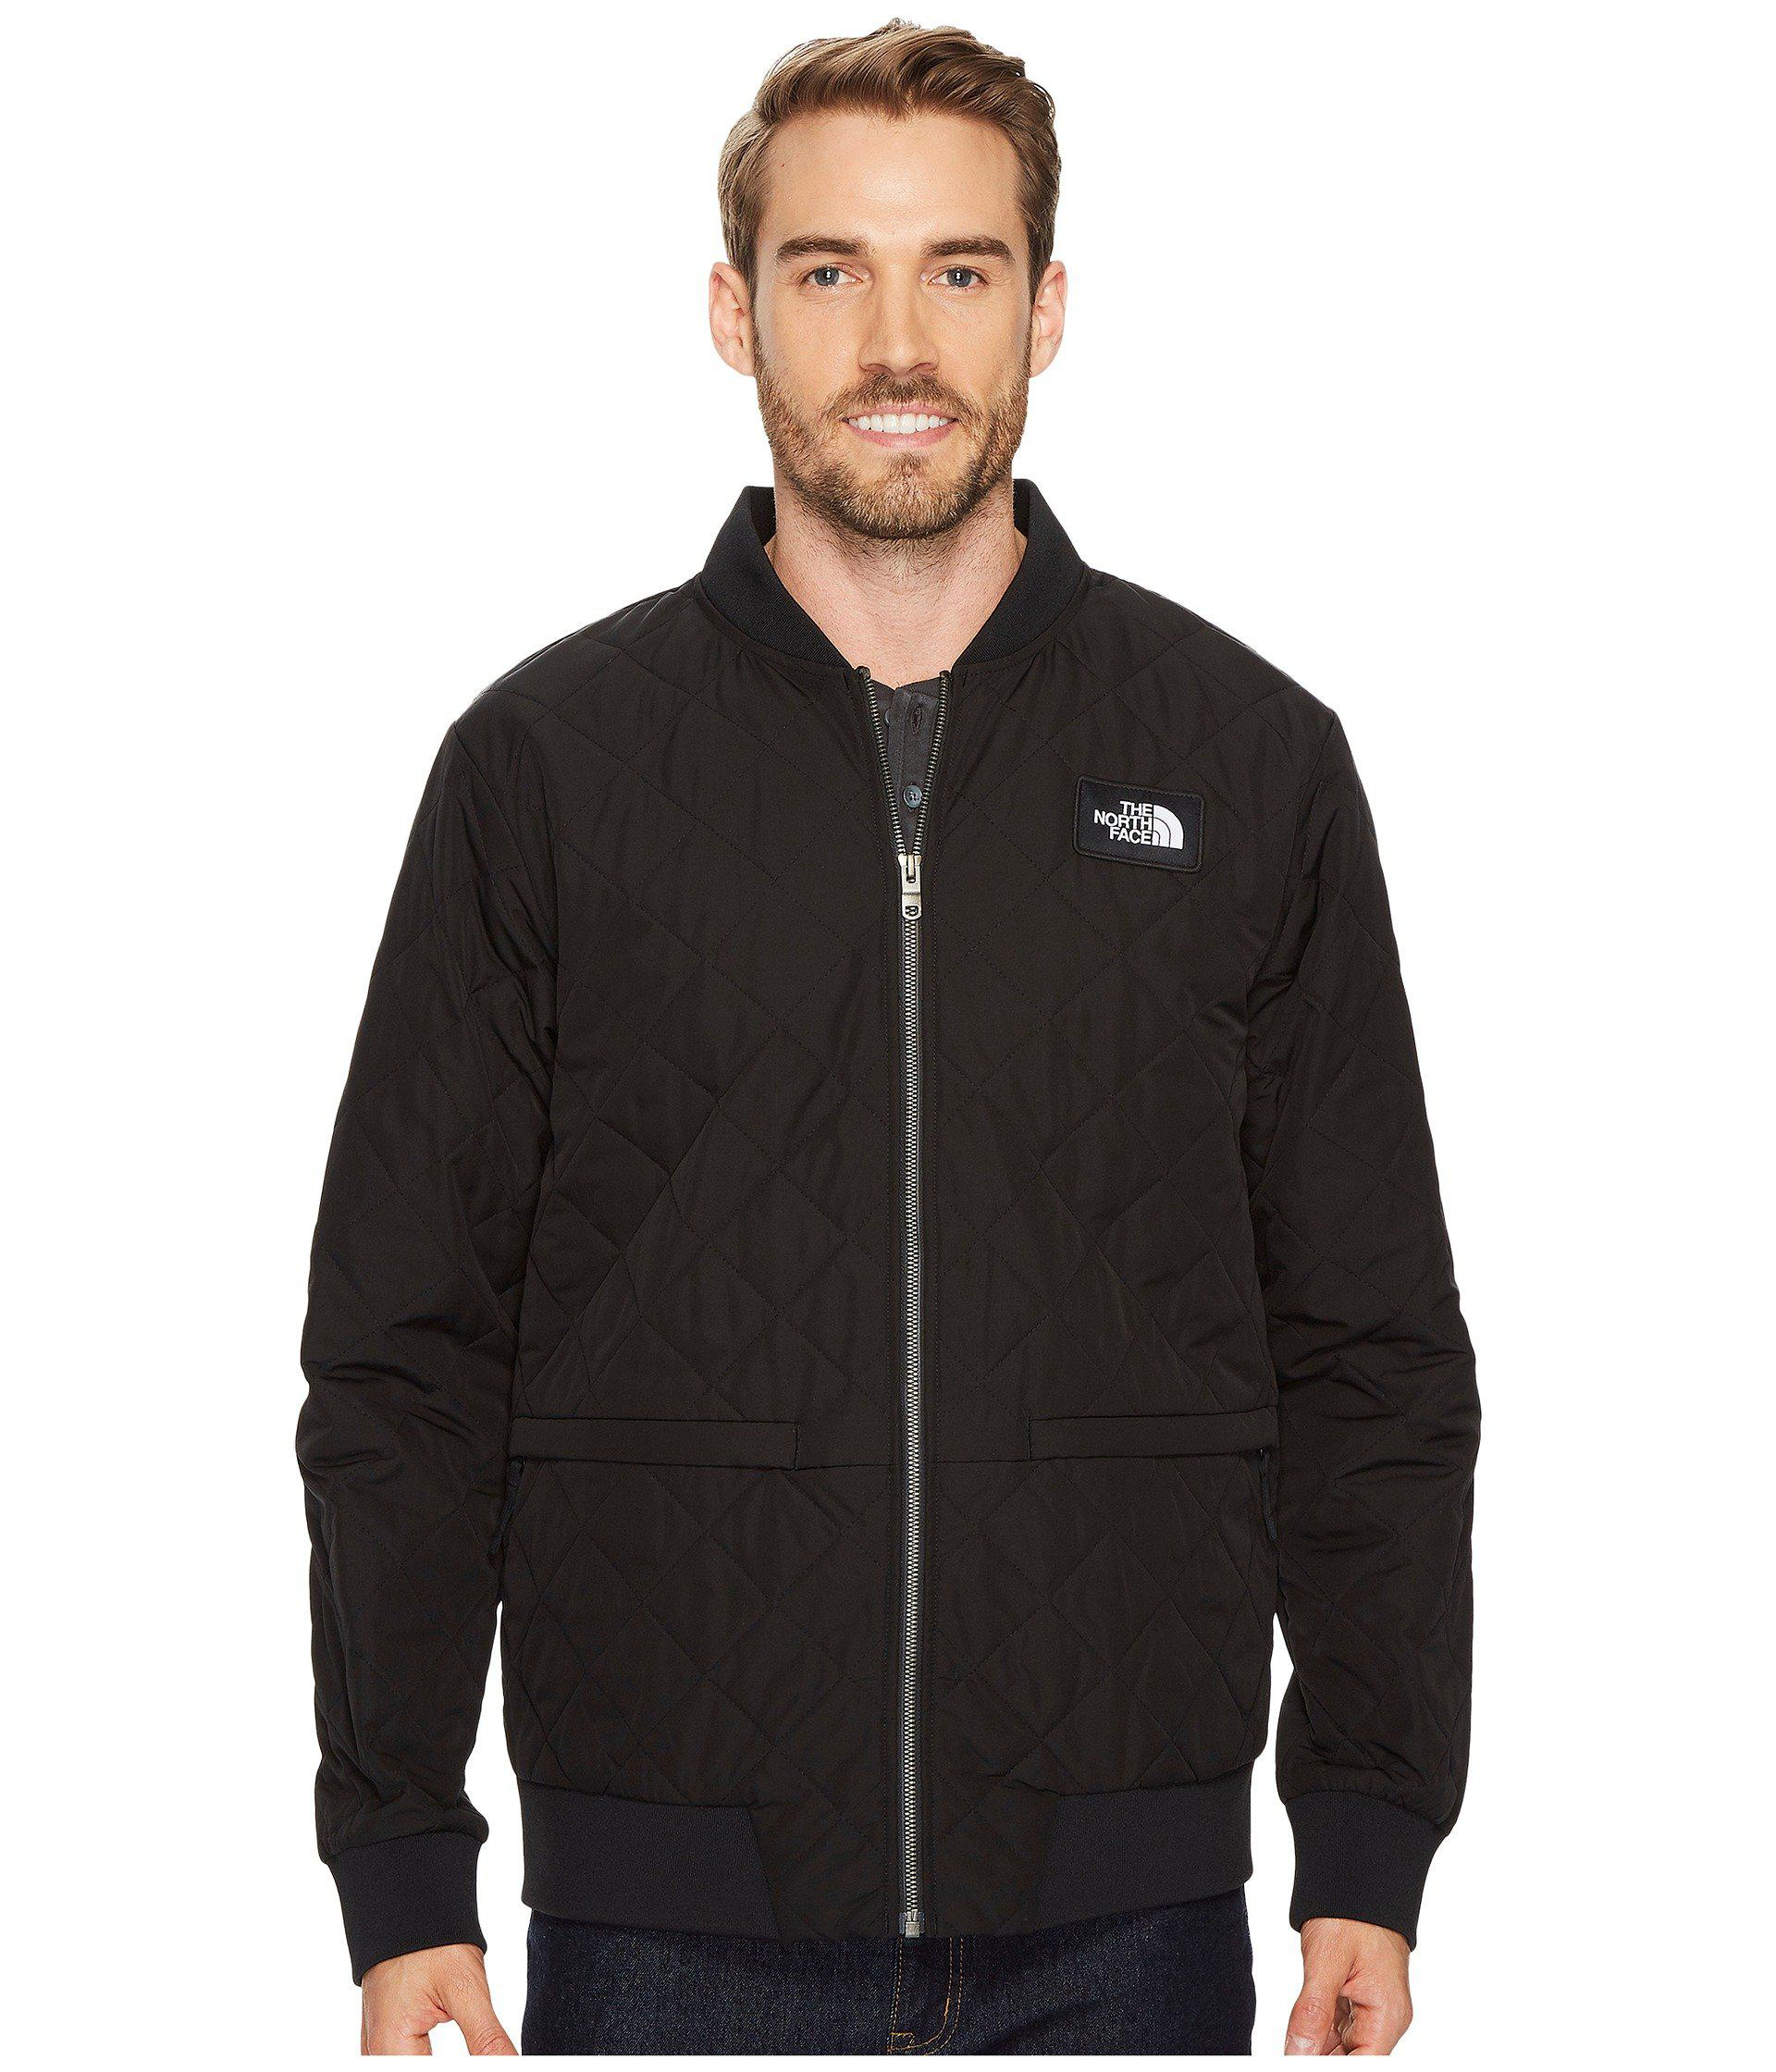 5db1ed7694f1 Lyst - The North Face Distributor Jacket in Black for Men - Save 30%